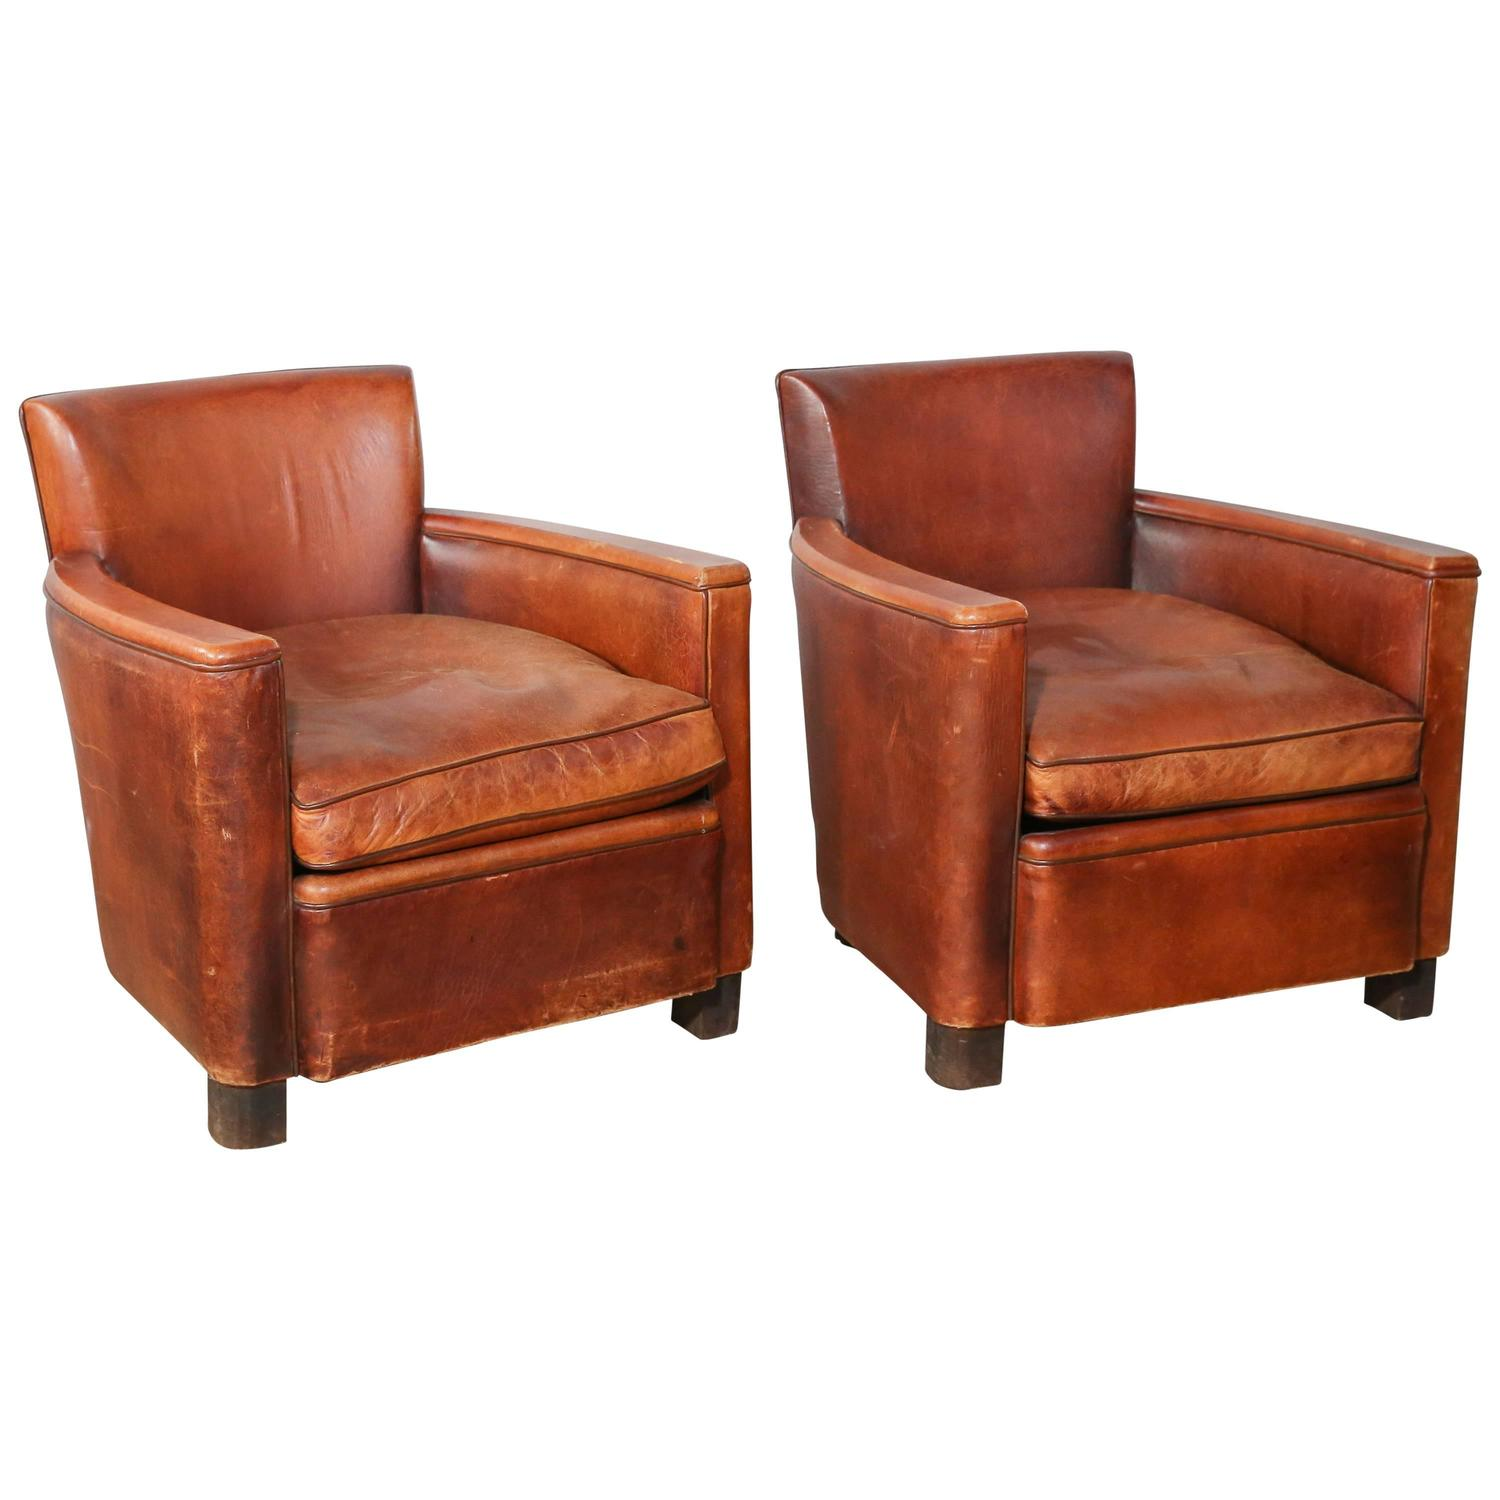 Vintage Club Chairs Pair Of Vintage Leather Club Chairs For Sale At 1stdibs